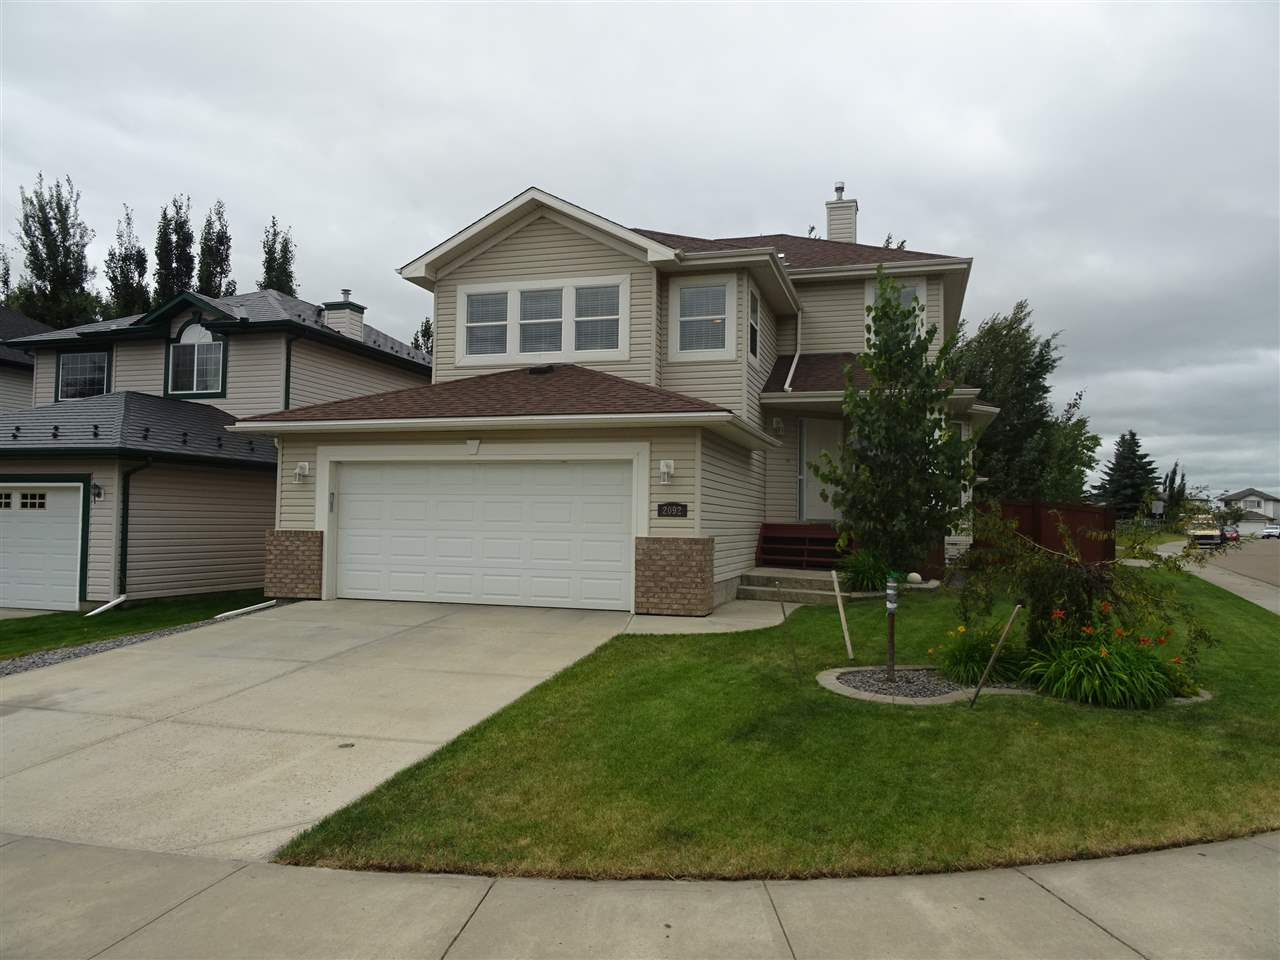 Main Photo: 2092 Brennan Crescent in Edmonton: Zone 58 House for sale : MLS® # E4074136